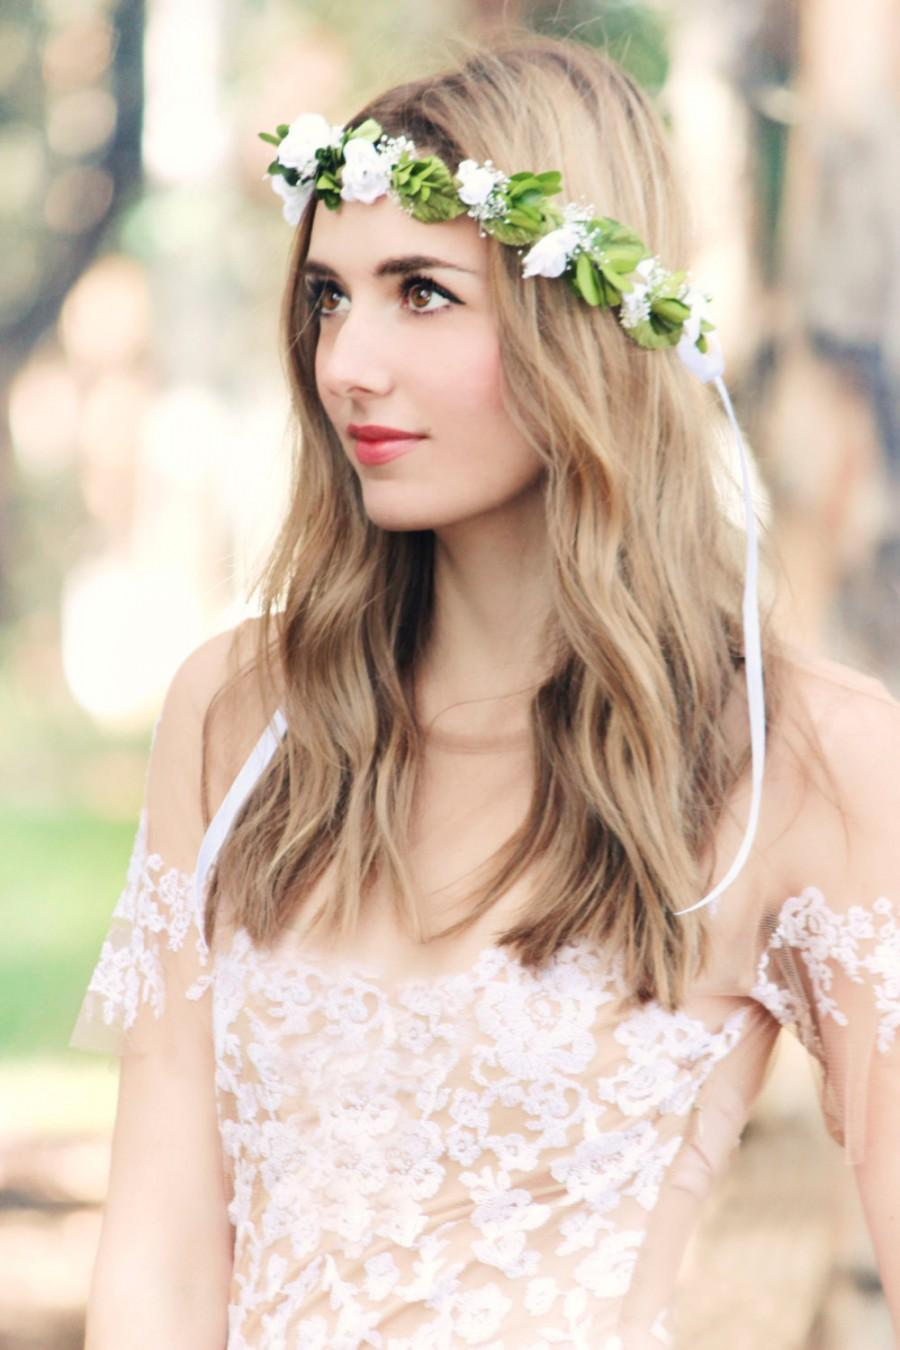 Laurel Wreath Bridal Headpiece Wedding Hair Accessories Flower